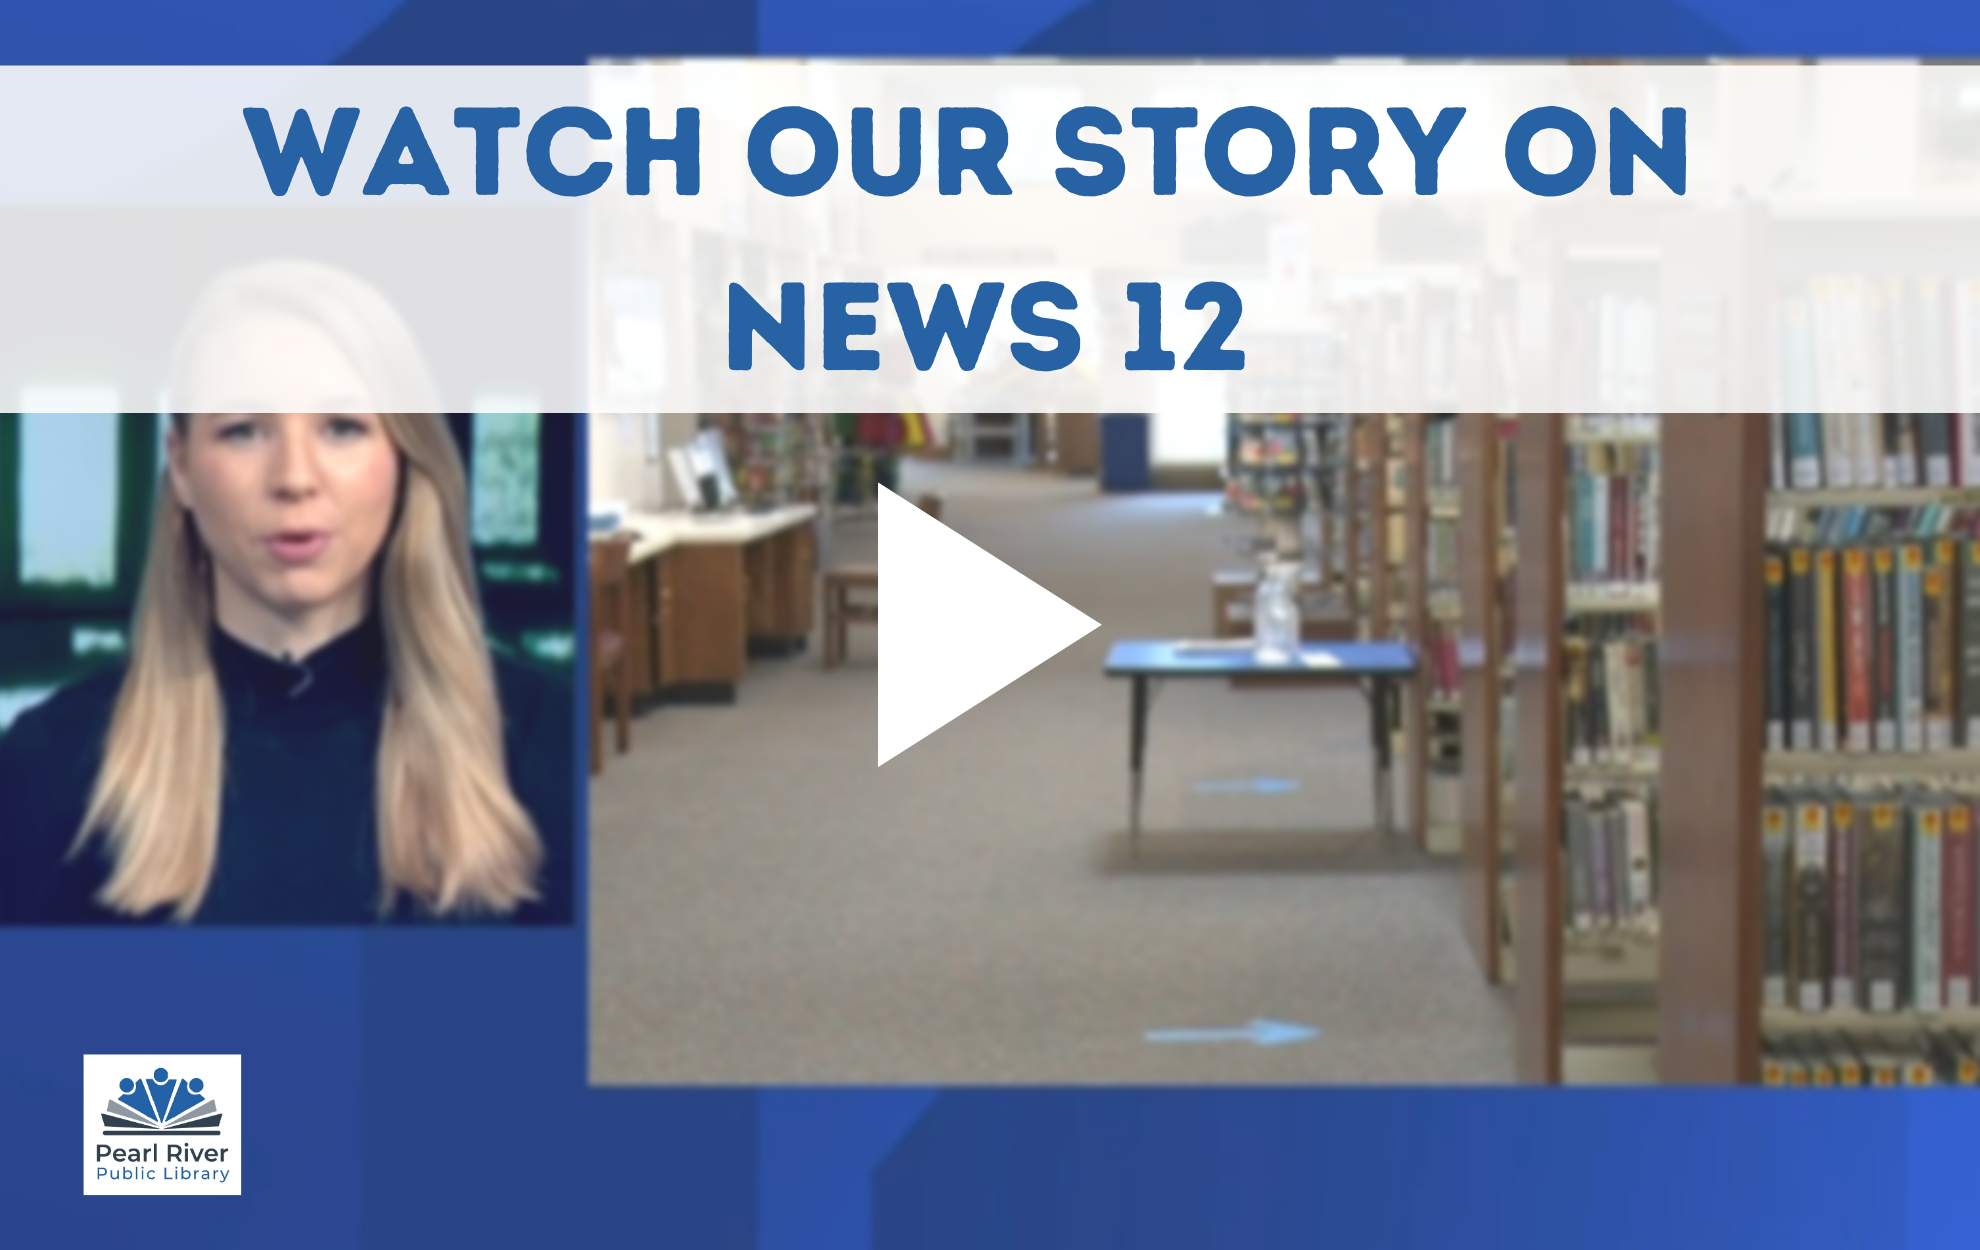 Watch our story on News 12